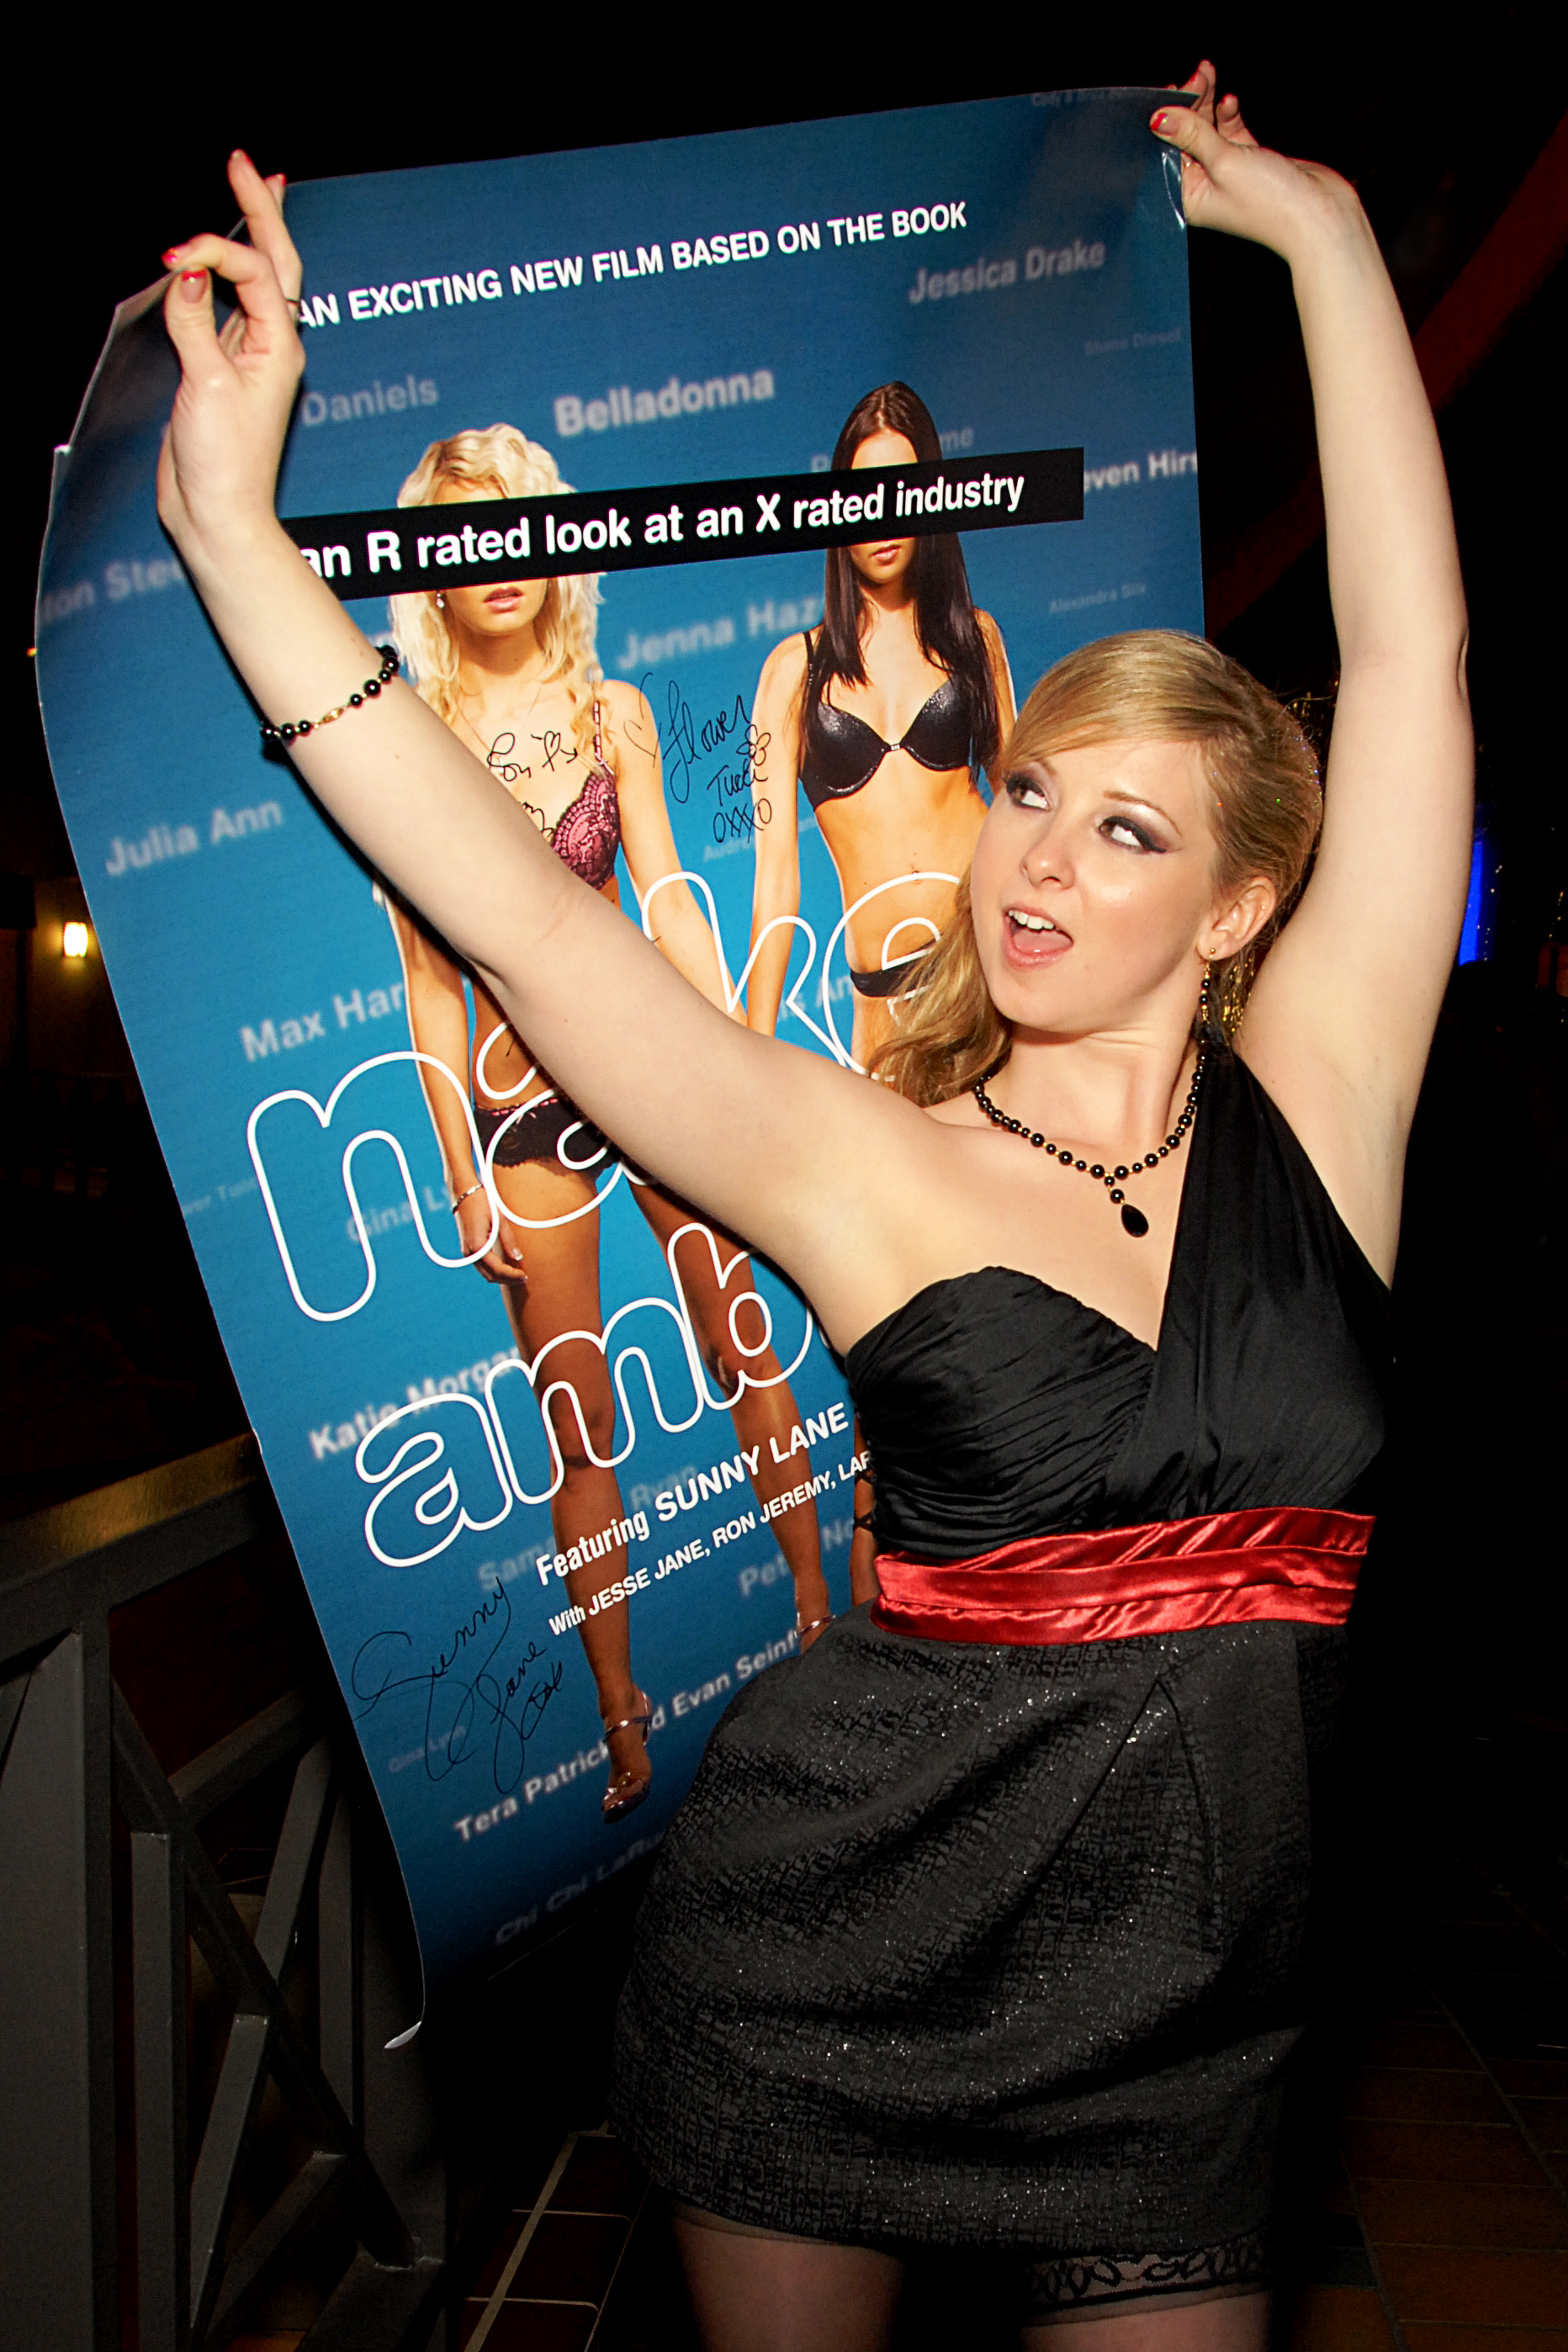 sunny lane movie list